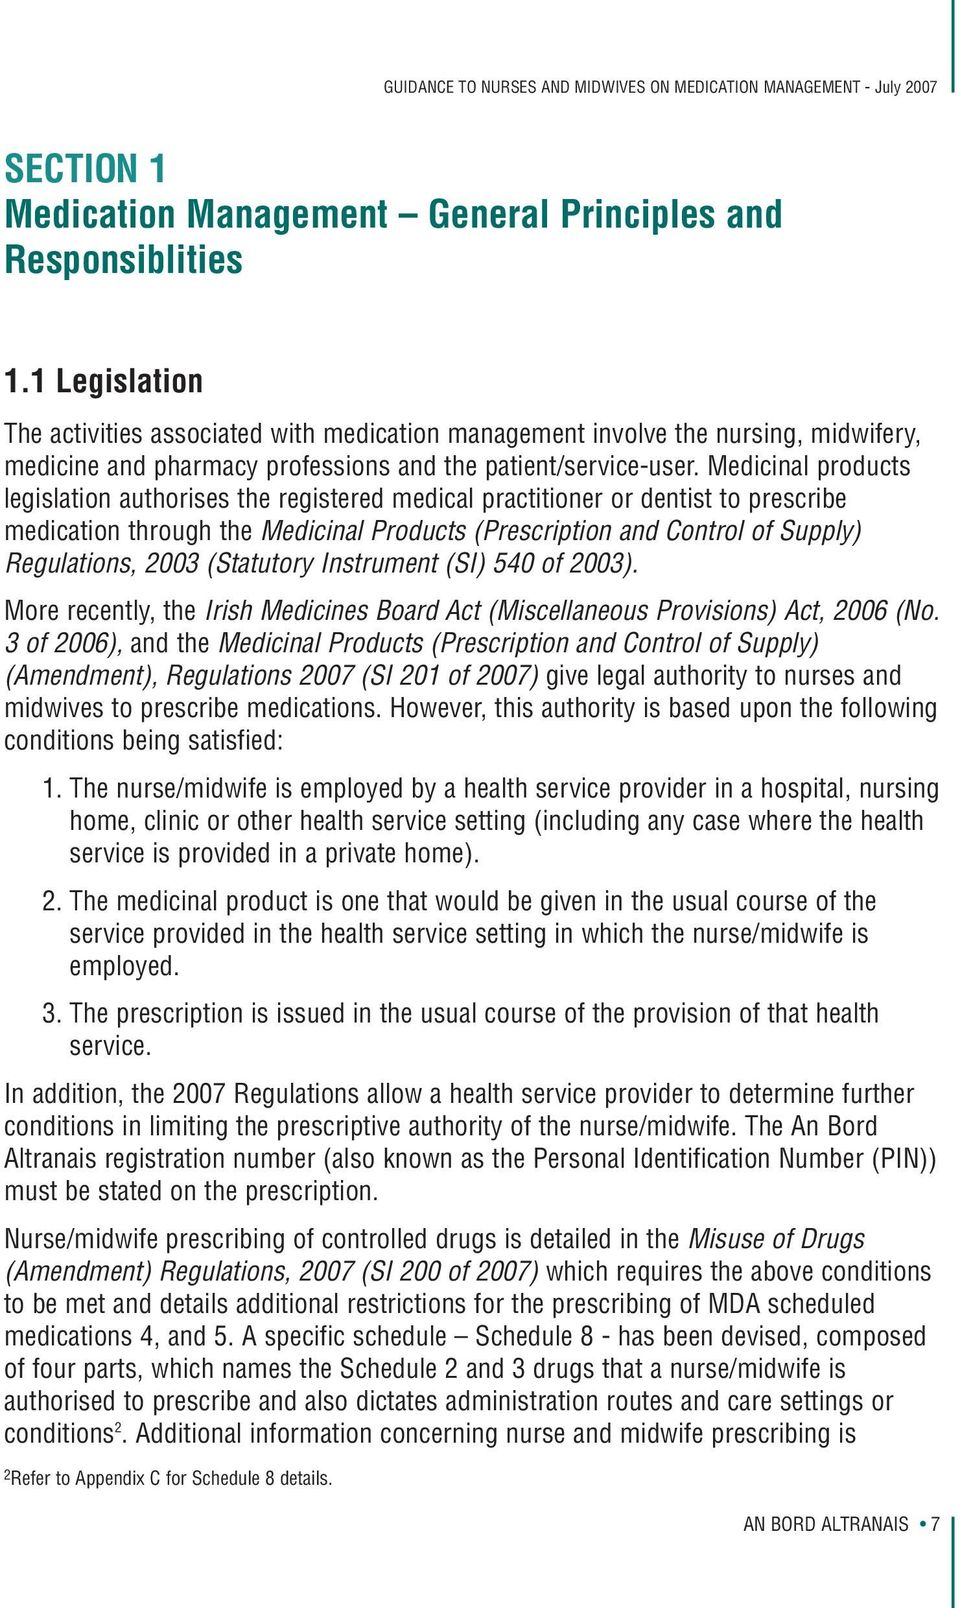 Medicinal products legislation authorises the registered medical practitioner or dentist to prescribe medication through the Medicinal Products (Prescription and Control of Supply) Regulations, 2003